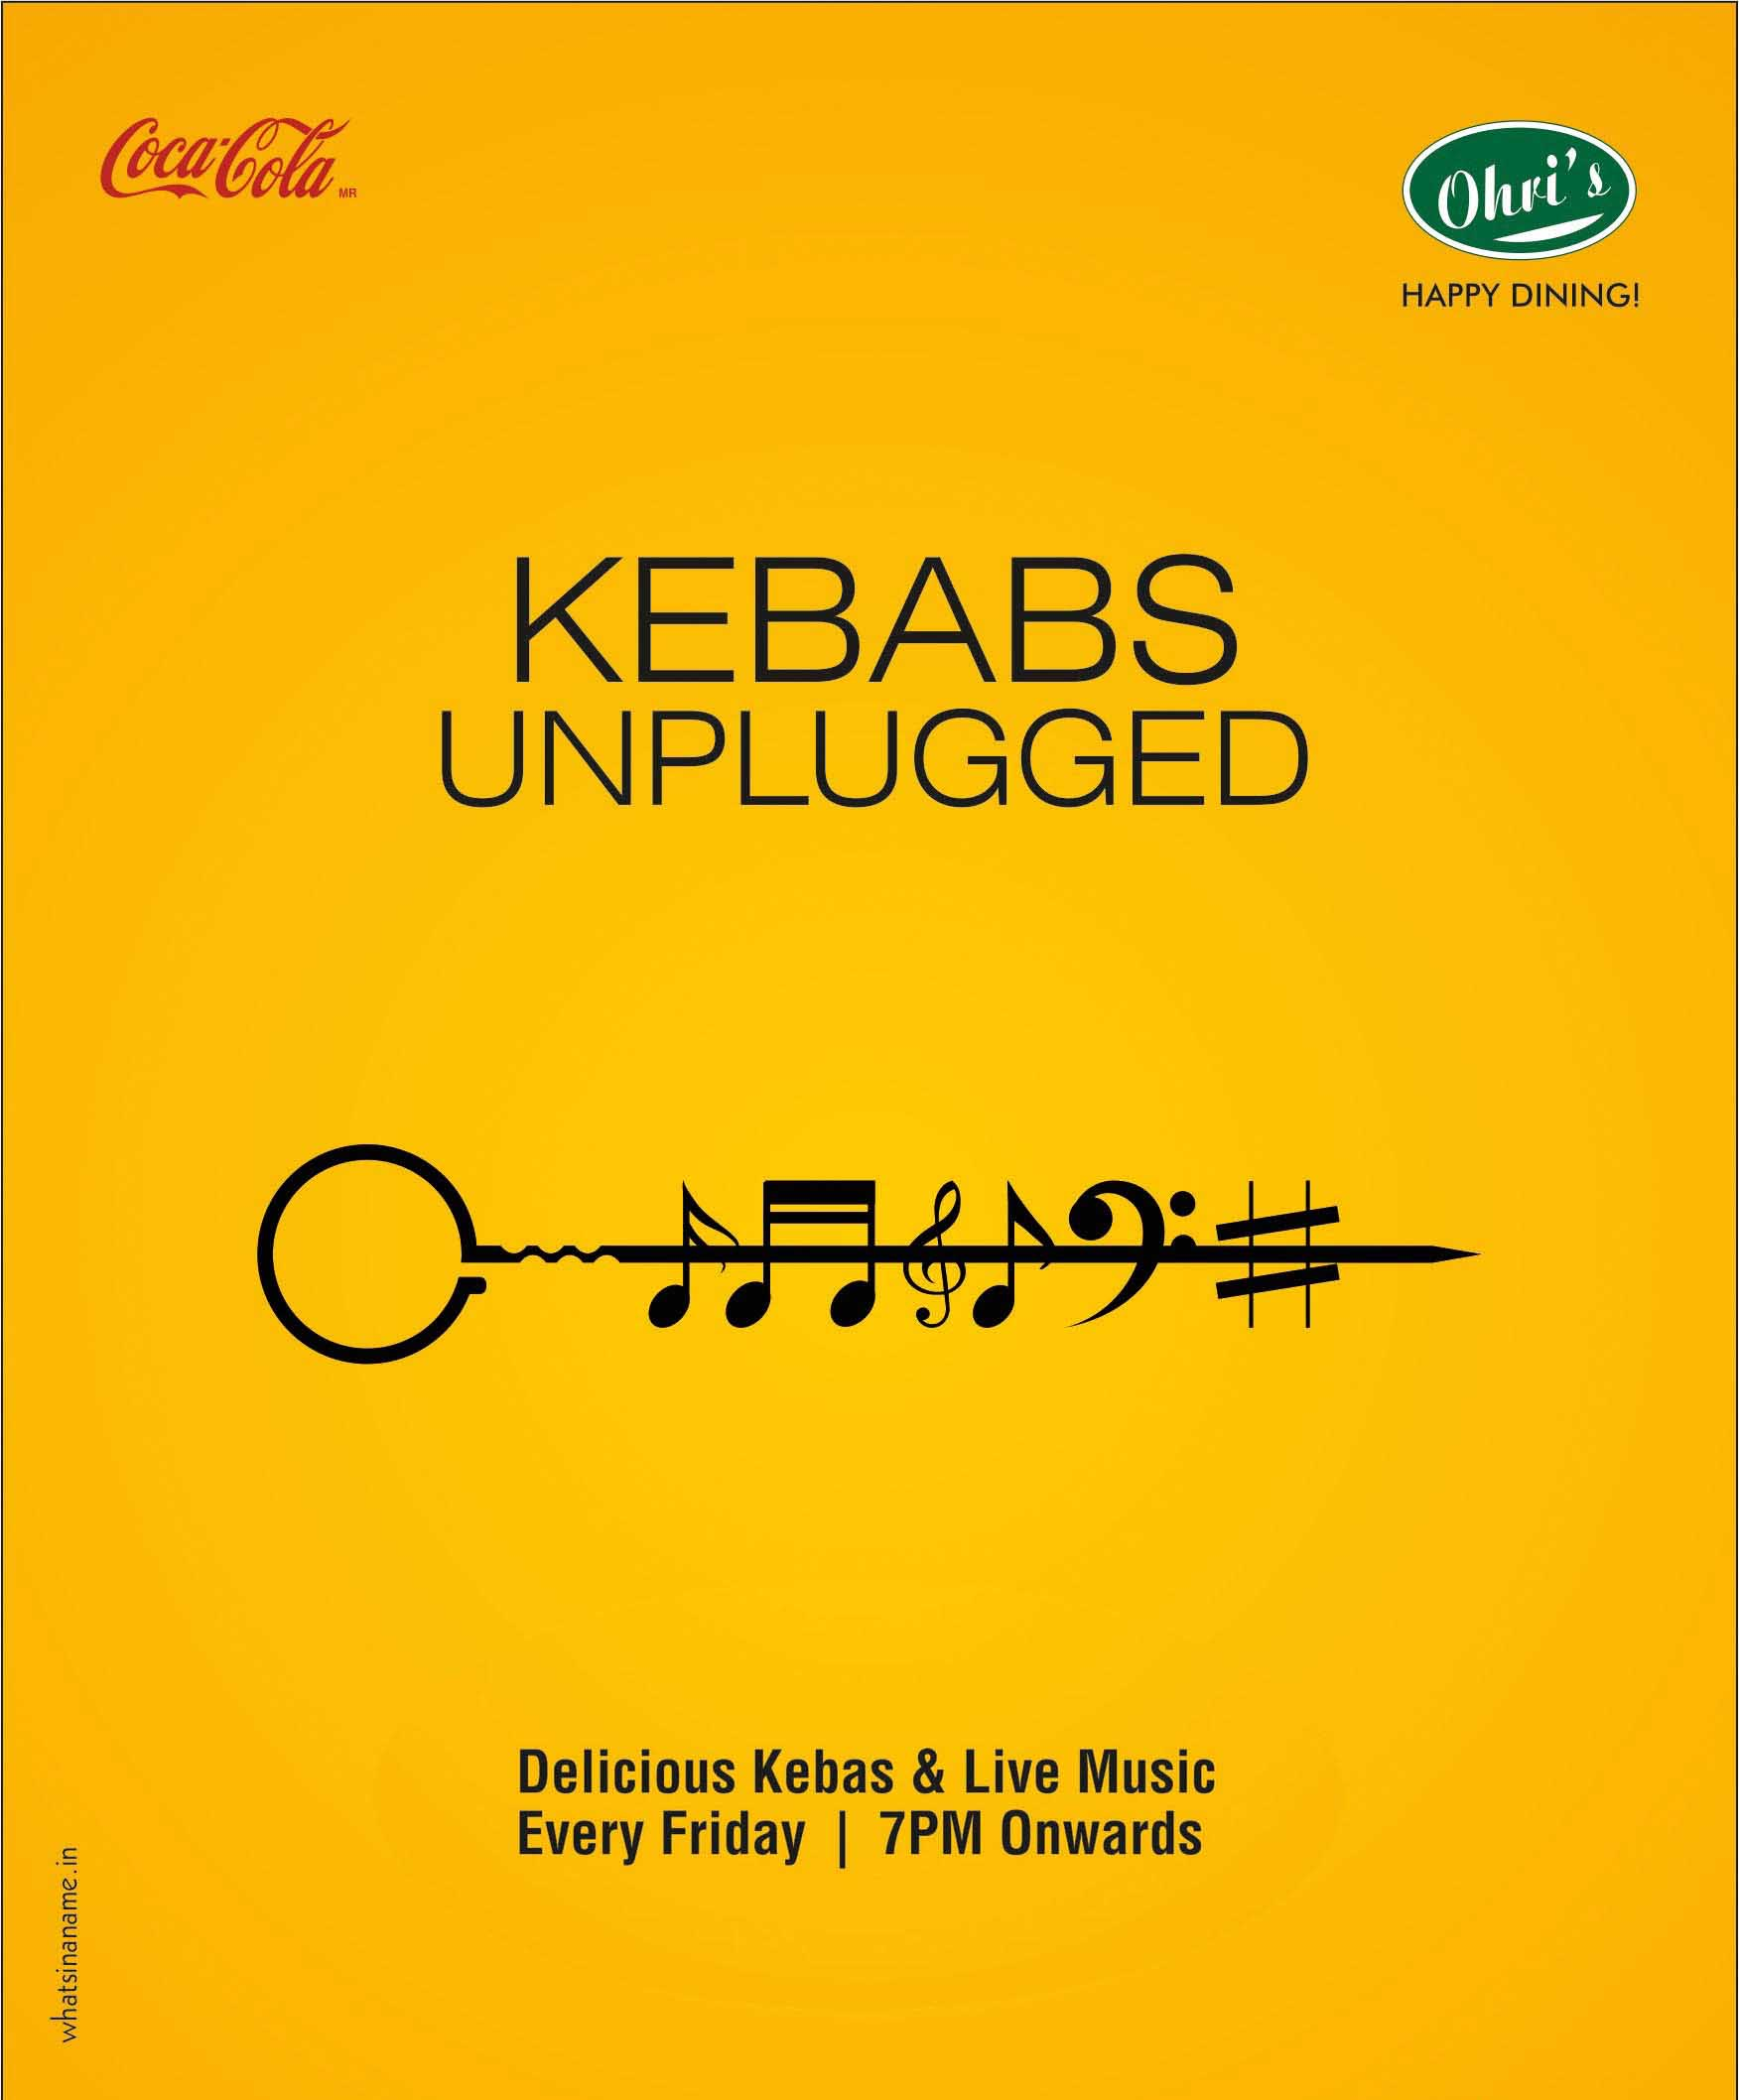 lhx4e9hcp3a-ohri's,-best-food-ad,-kebabs-&-music,-what's-in-a-name-creatives